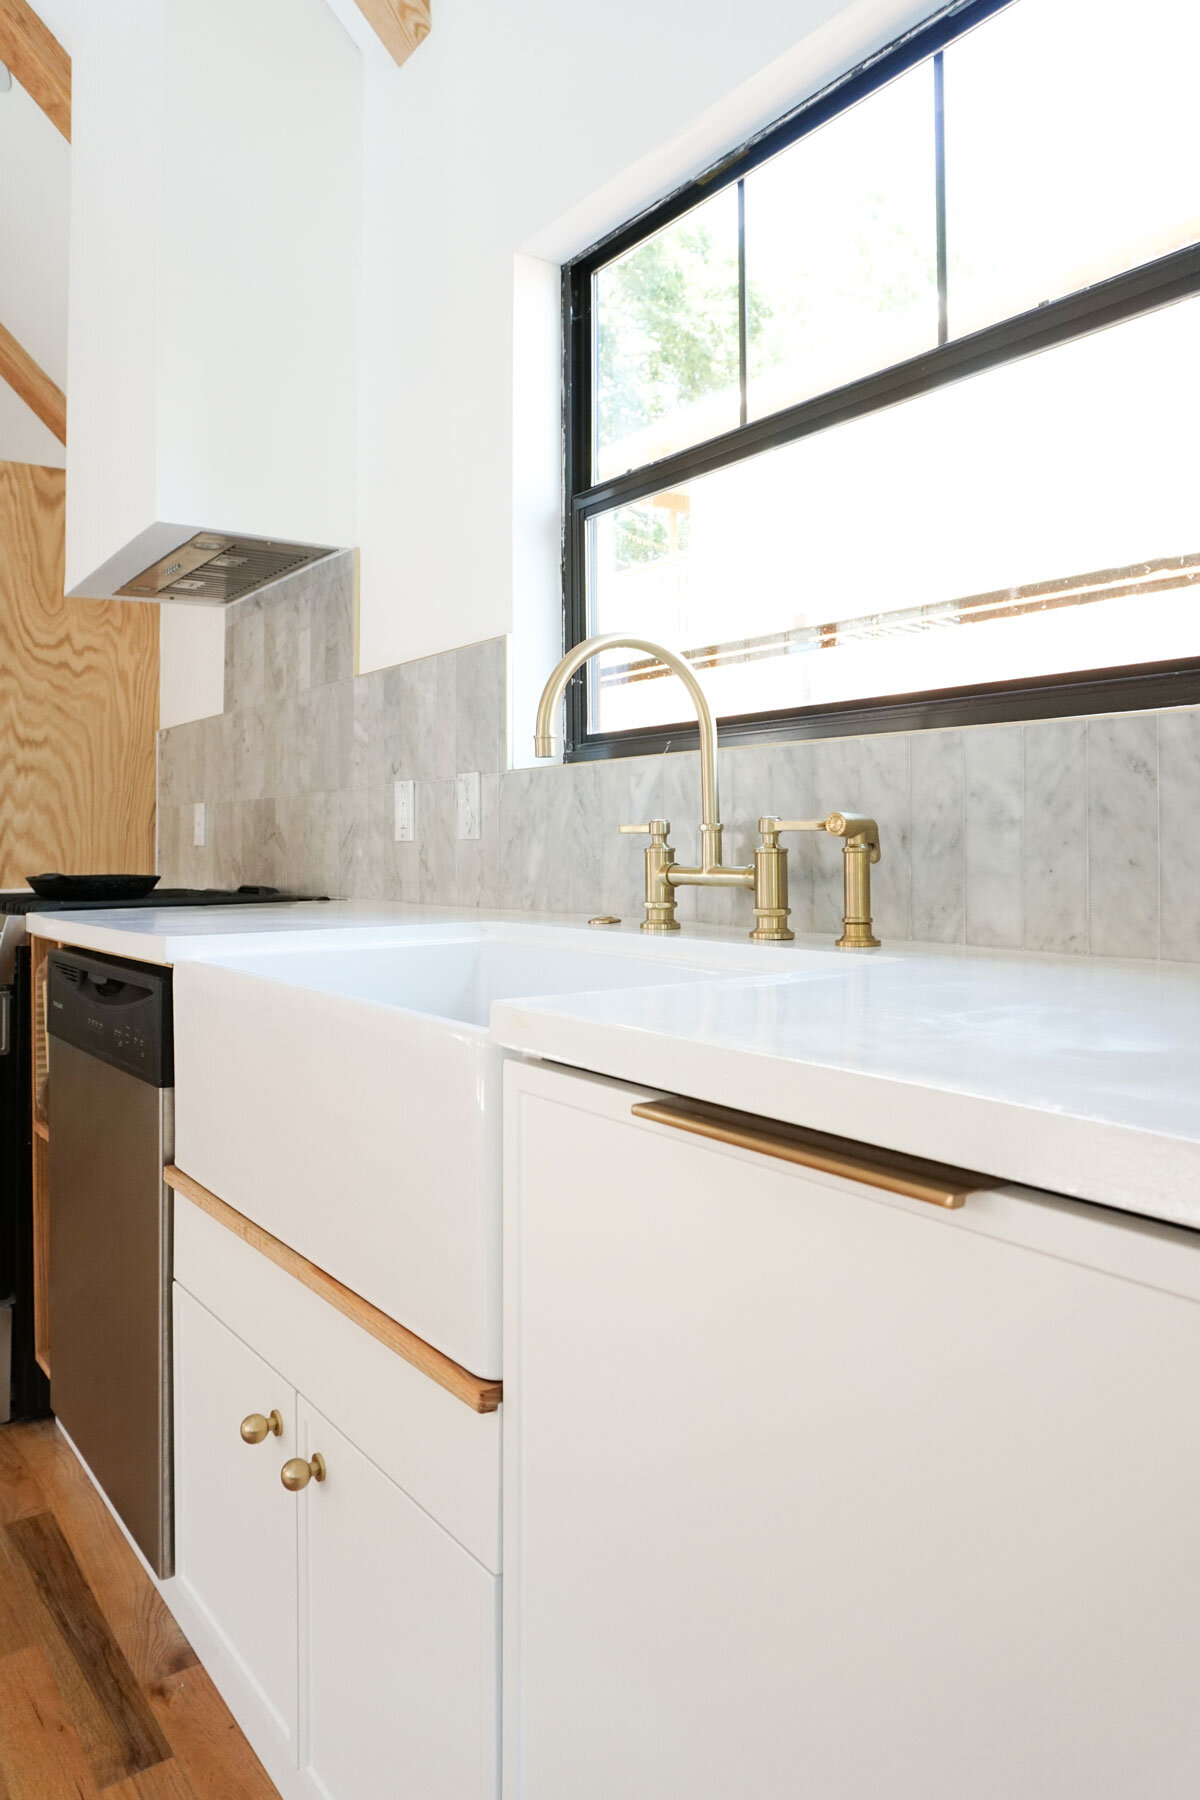 How To Pour And Finish Diy White Concrete Countertops With Concrete Countertop Solutions Collected Eclectic